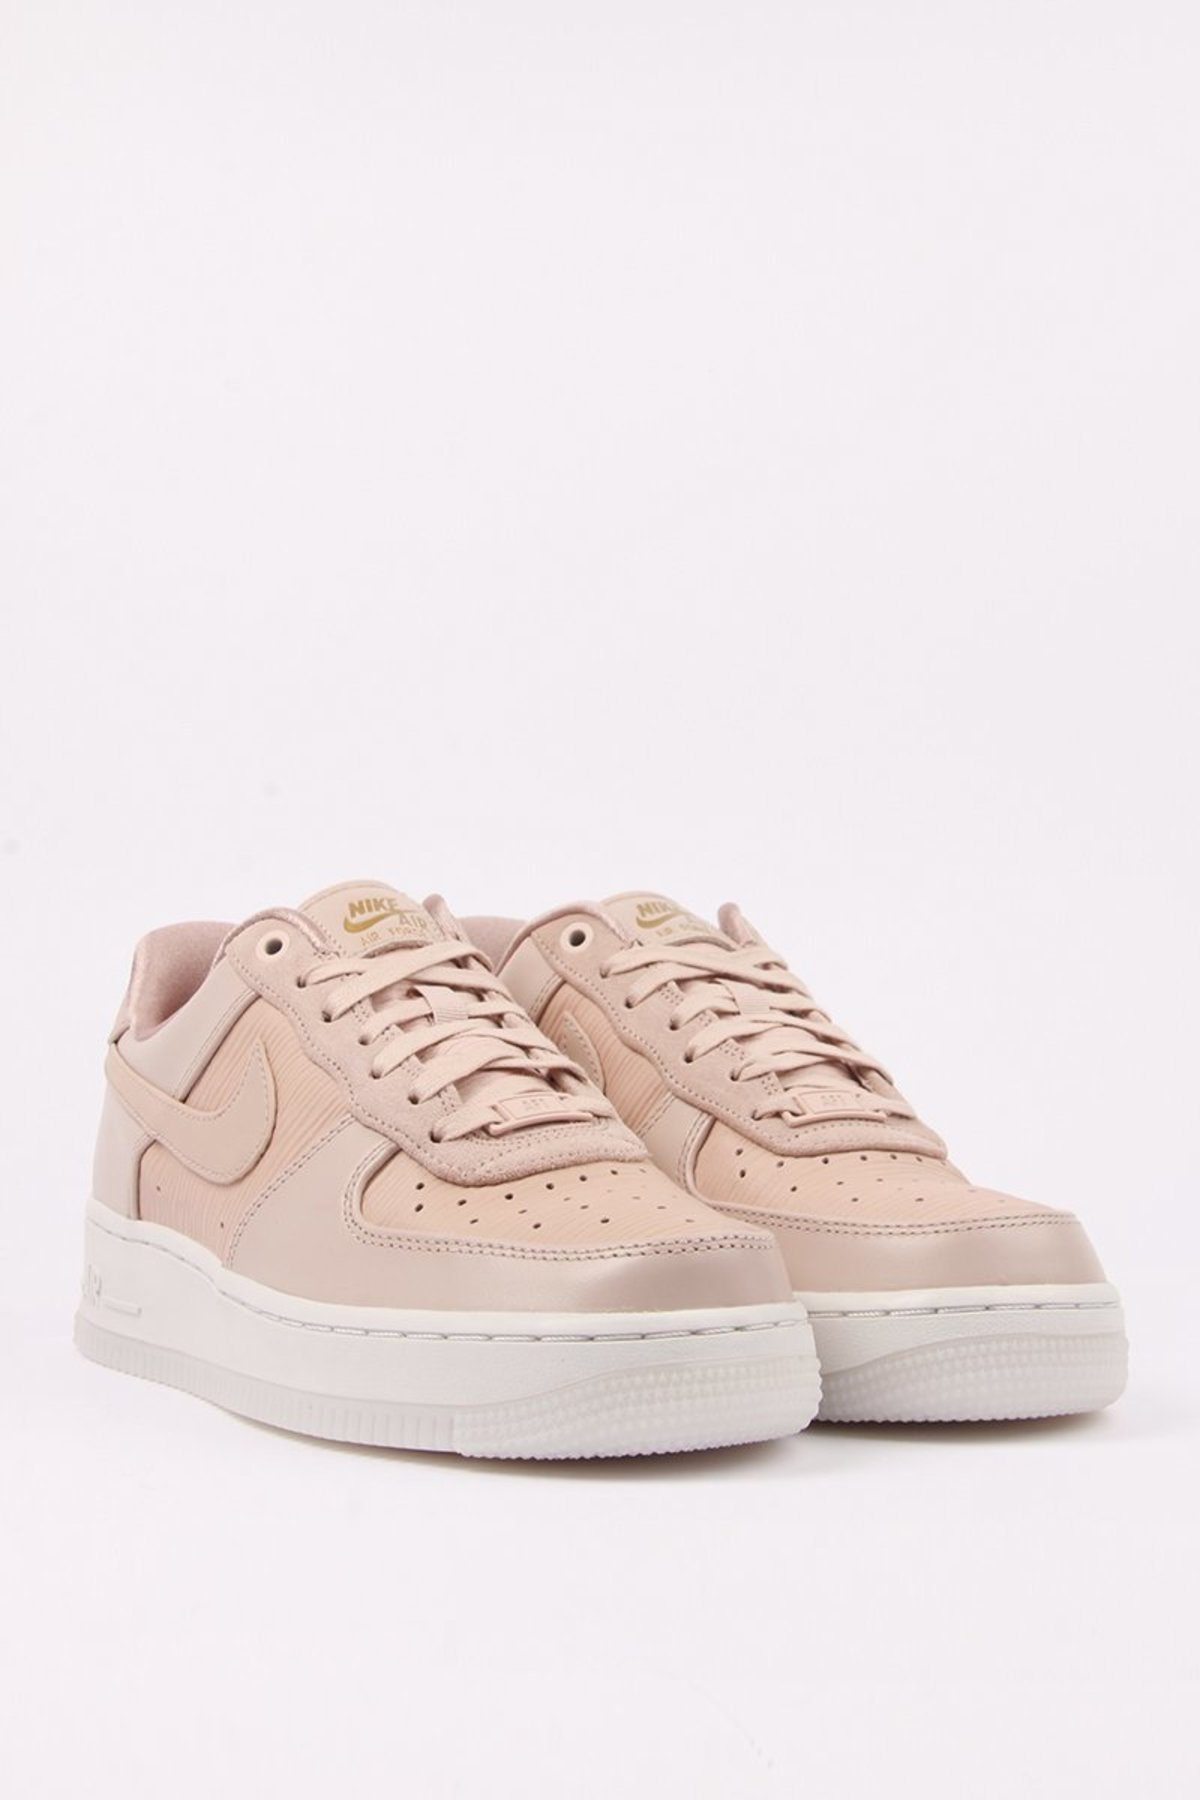 online store 6c262 9e7b1 Nike Air Force 1 07 Lux - Particle beige   Garmentory